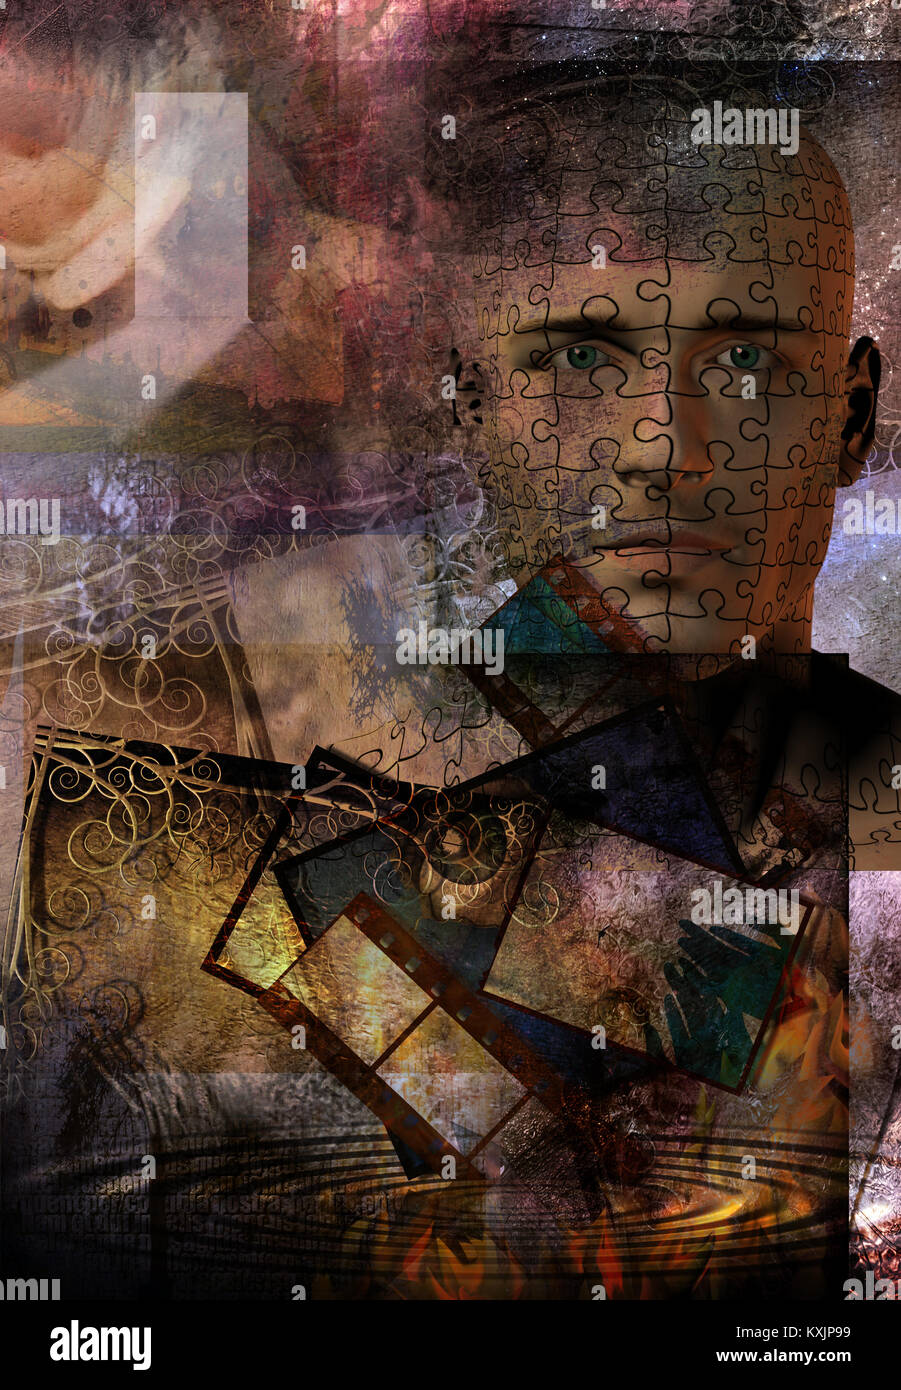 Puzzle Pattern Stock Photos & Puzzle Pattern Stock Images - Alamy